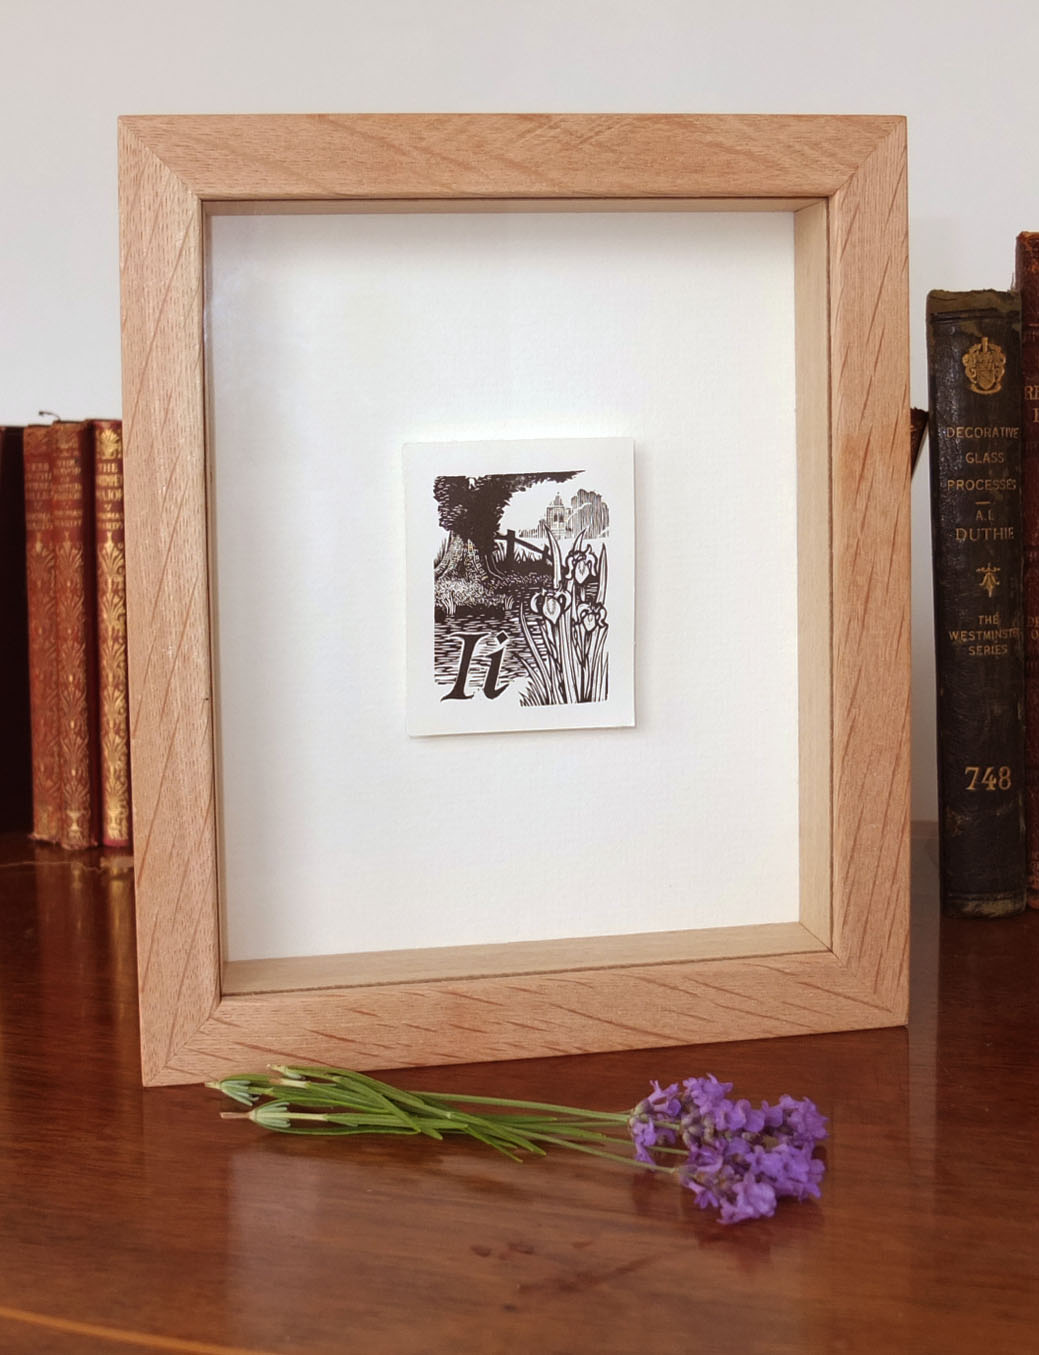 I for Iris Float mounted and framed Wood Engraving by Keith Pettit